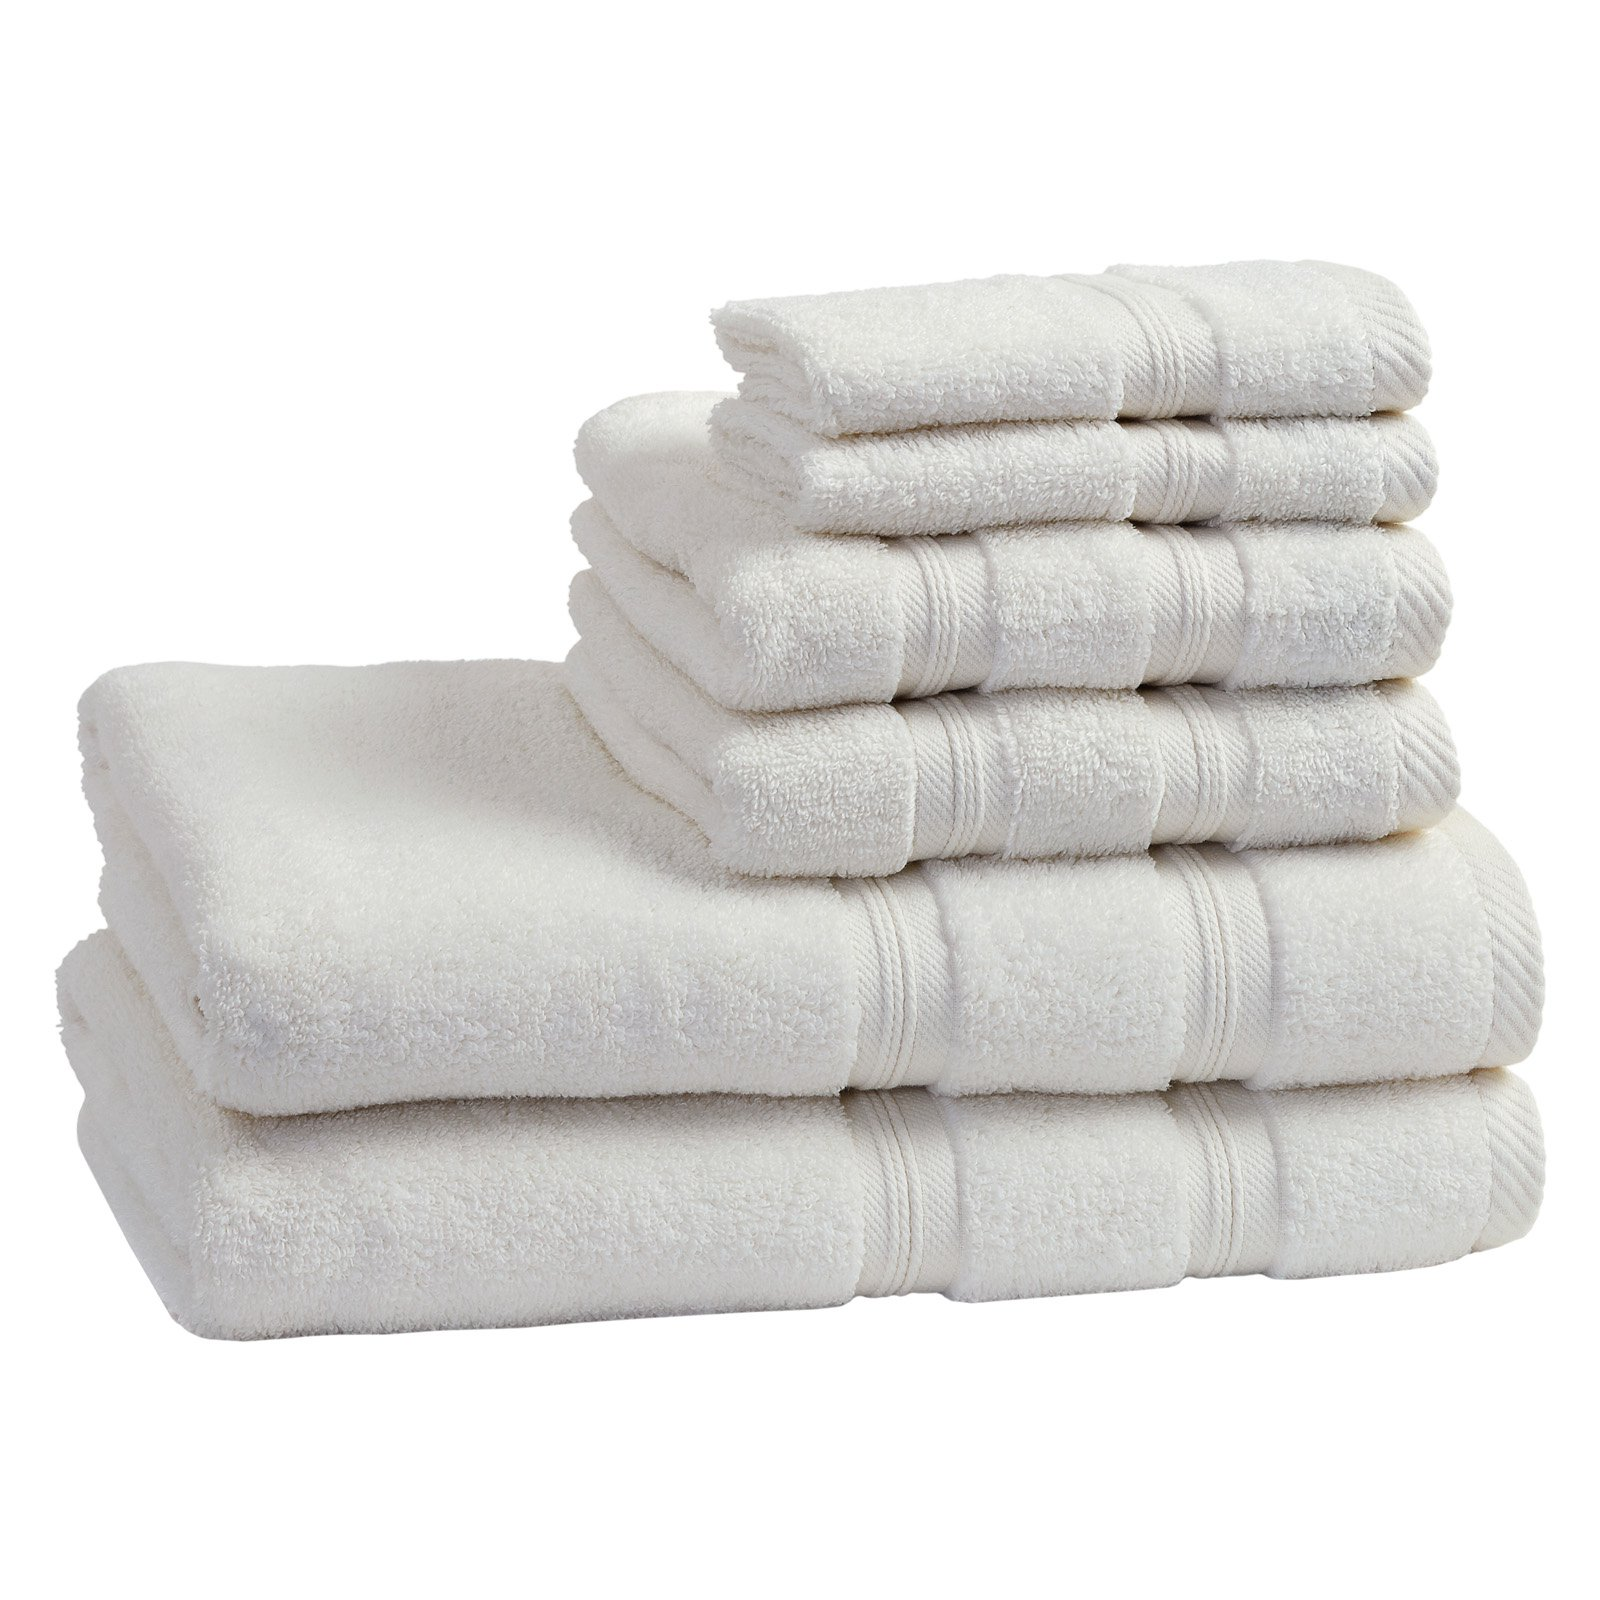 Superior Super Soft and Absorbent 100% Cotton Zero Twist Smart Dry 6PC Towel Set by Superior